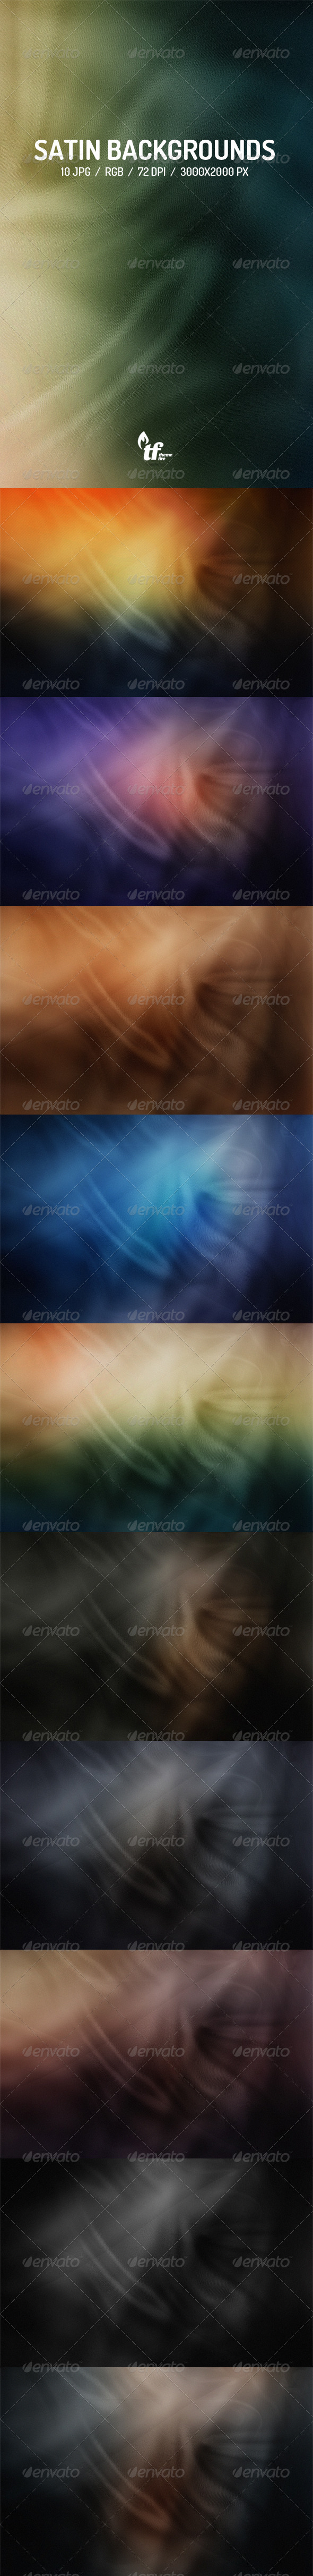 GraphicRiver Satin Lines Background 7522669